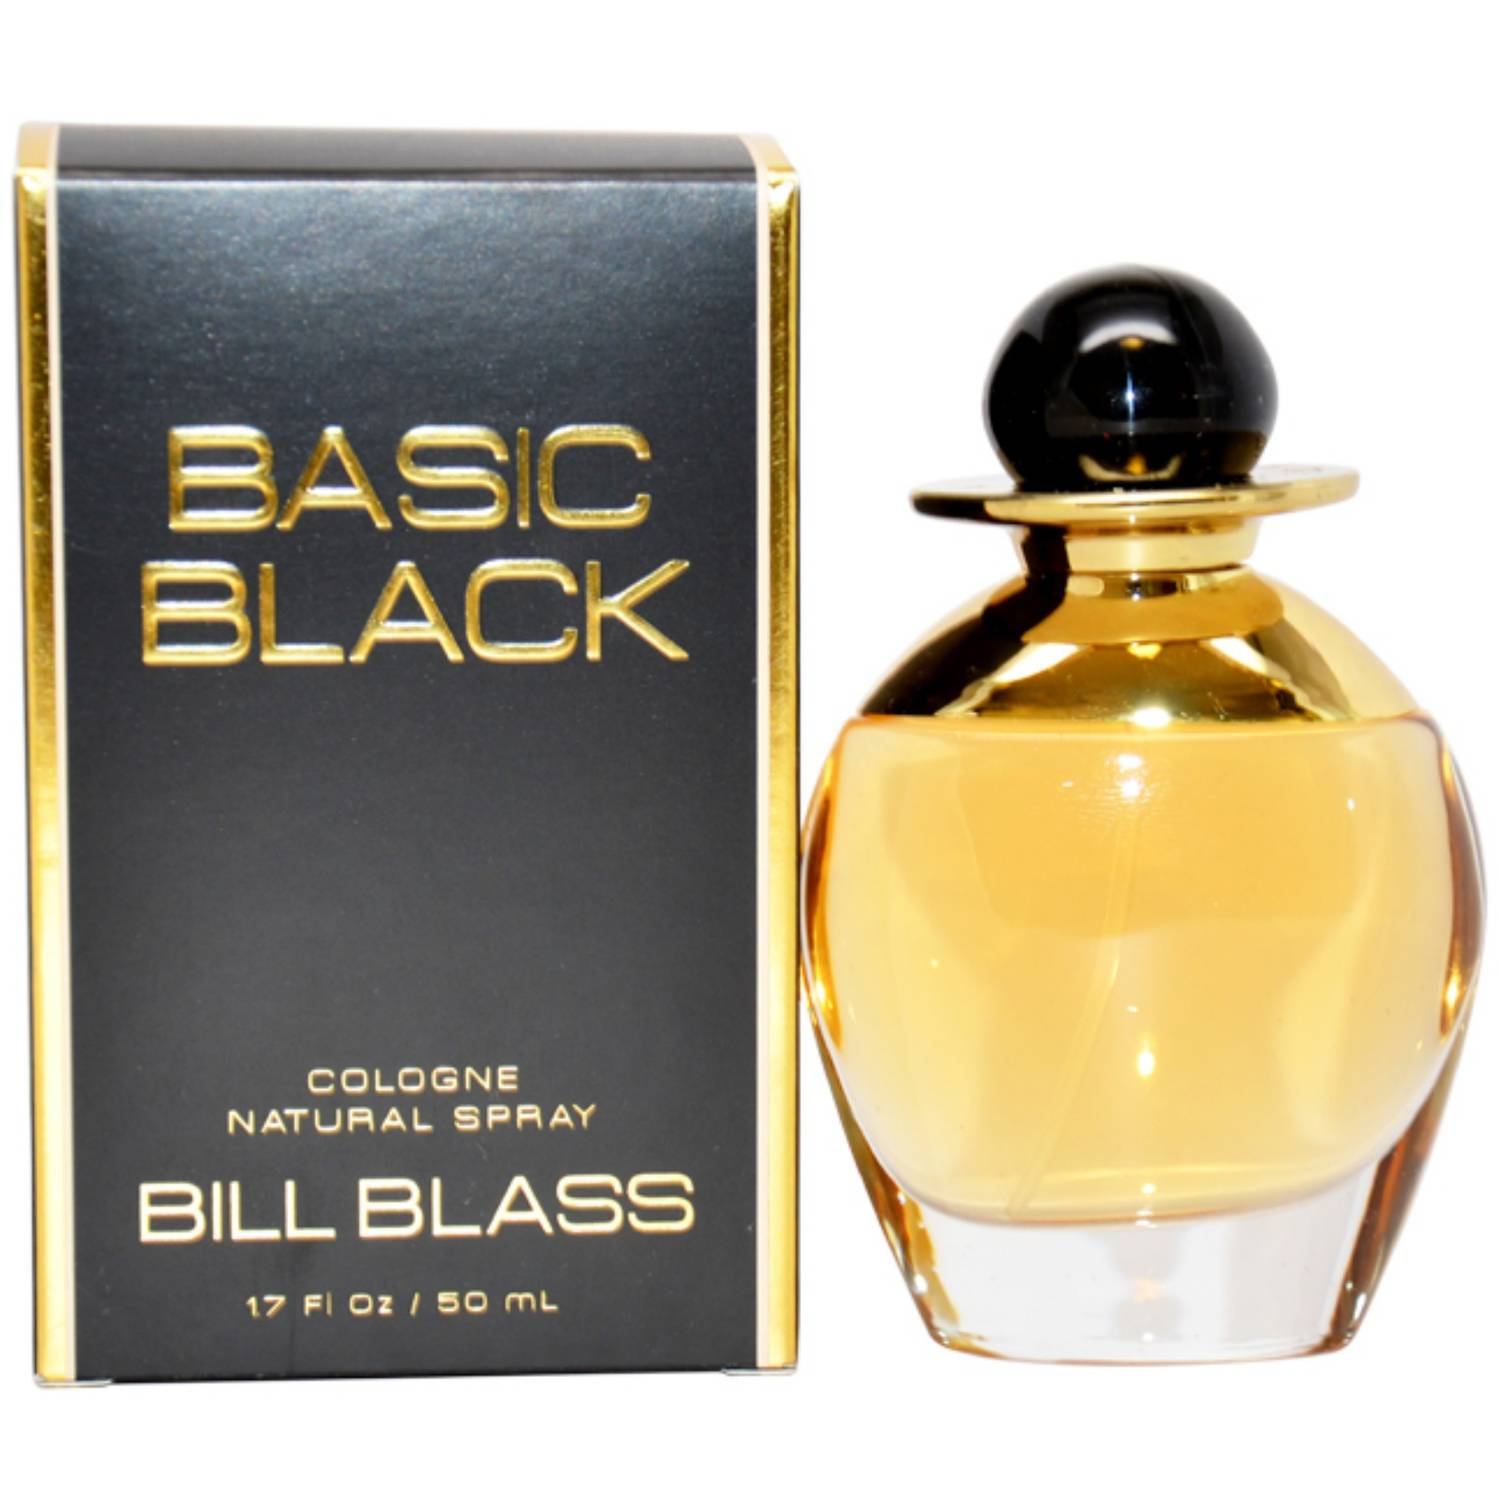 Bill Blass Basic Black for Women Cologne Spray, 1.7 oz